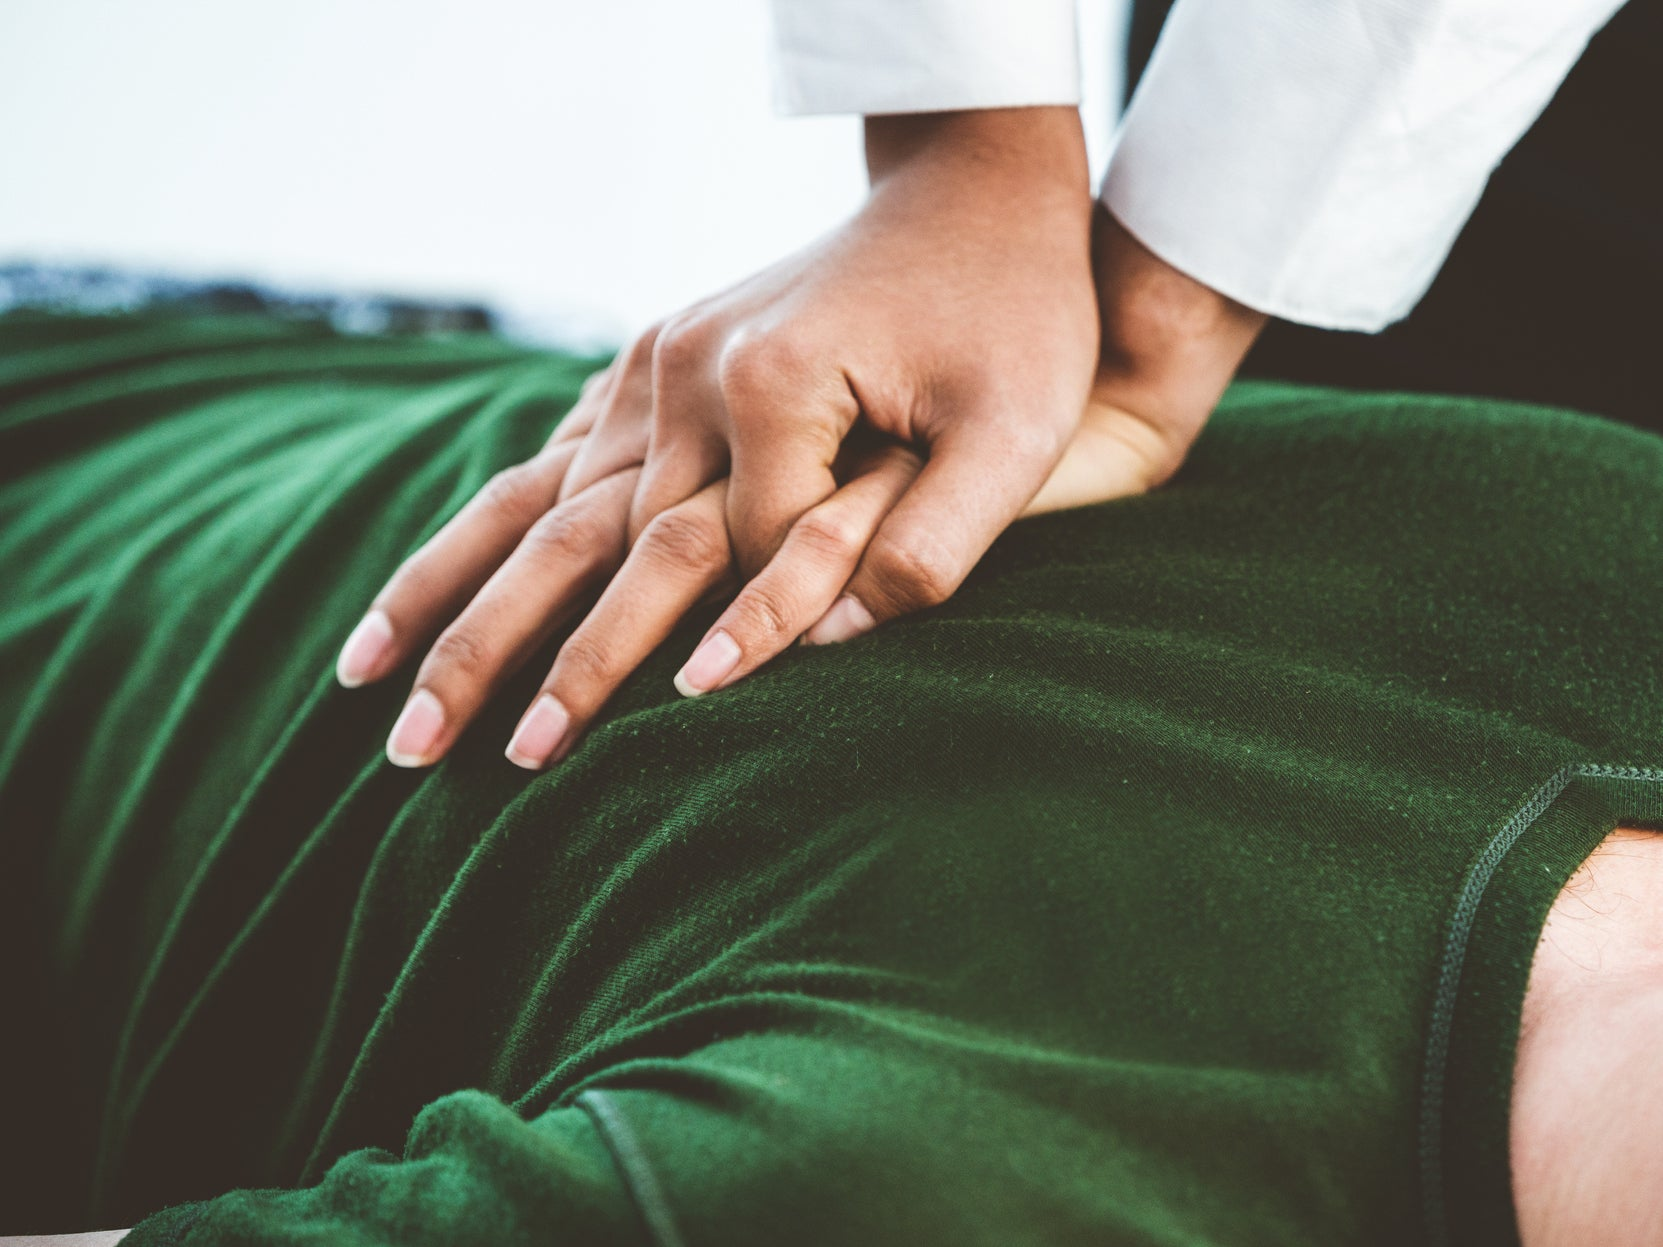 Should you be performing CPR differently during the coronavirus pandemic?